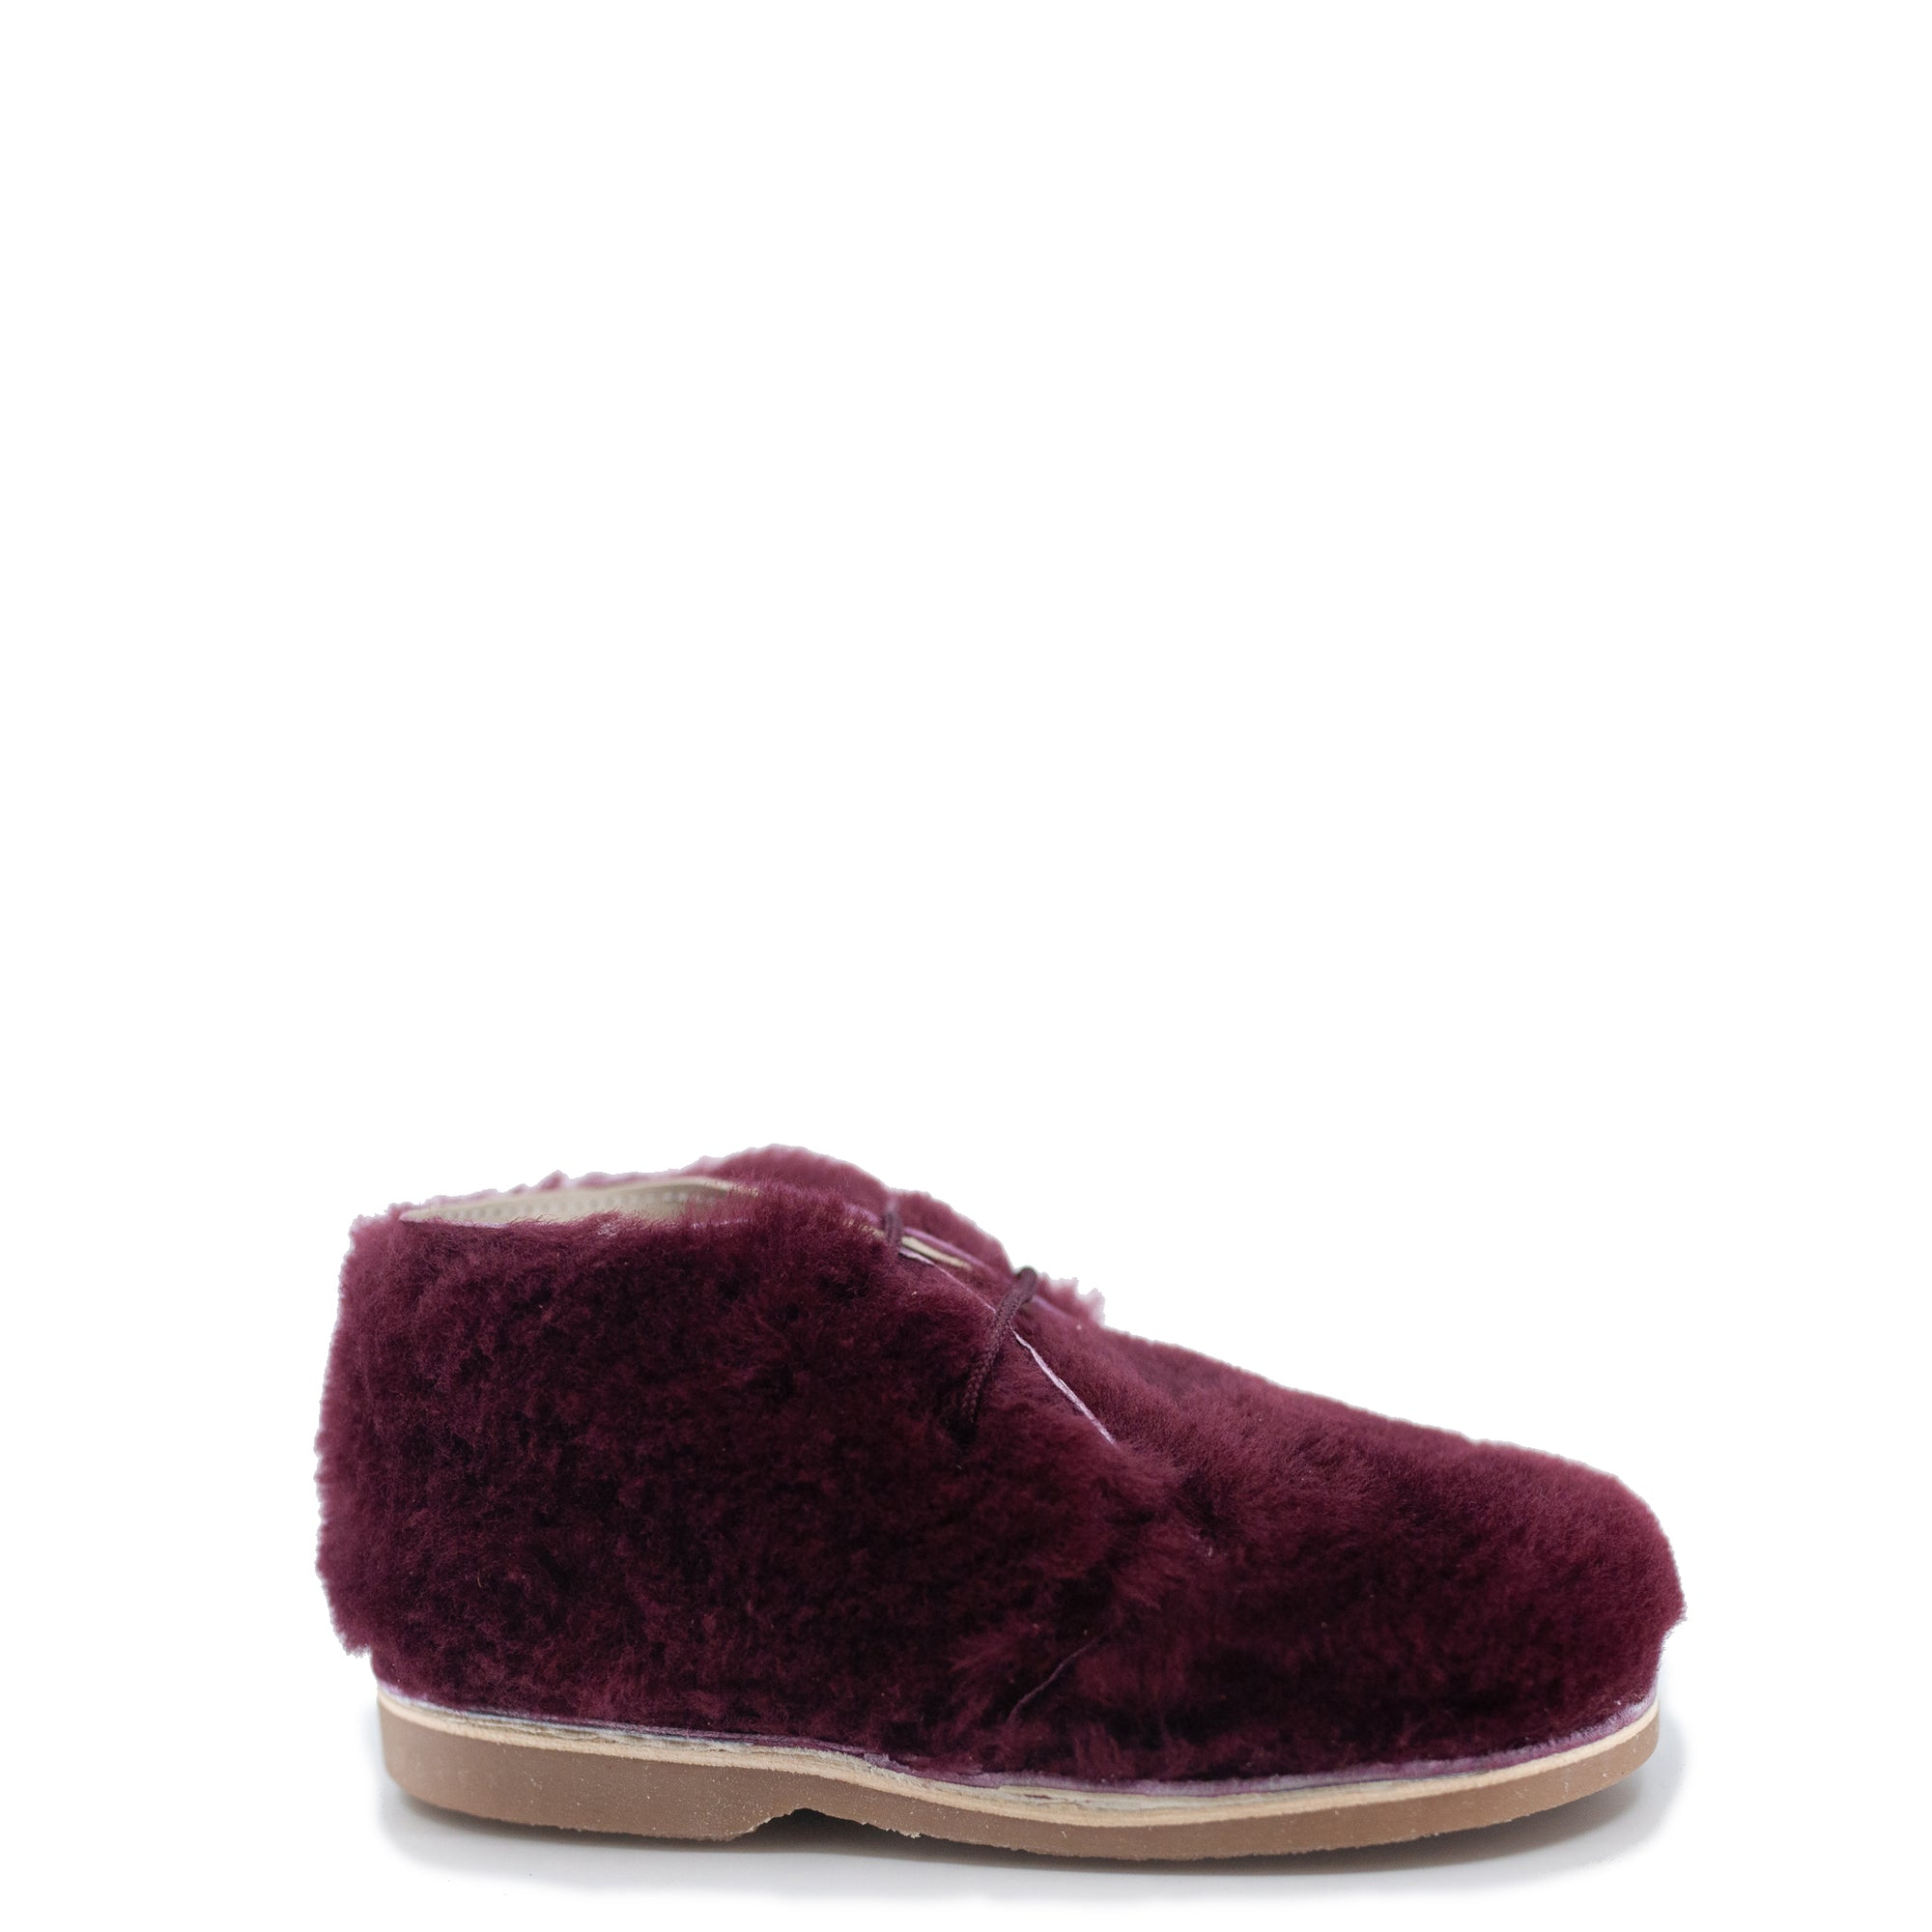 Sonatina Burgundy Teddy Lace Bootie-Tassel Children Shoes